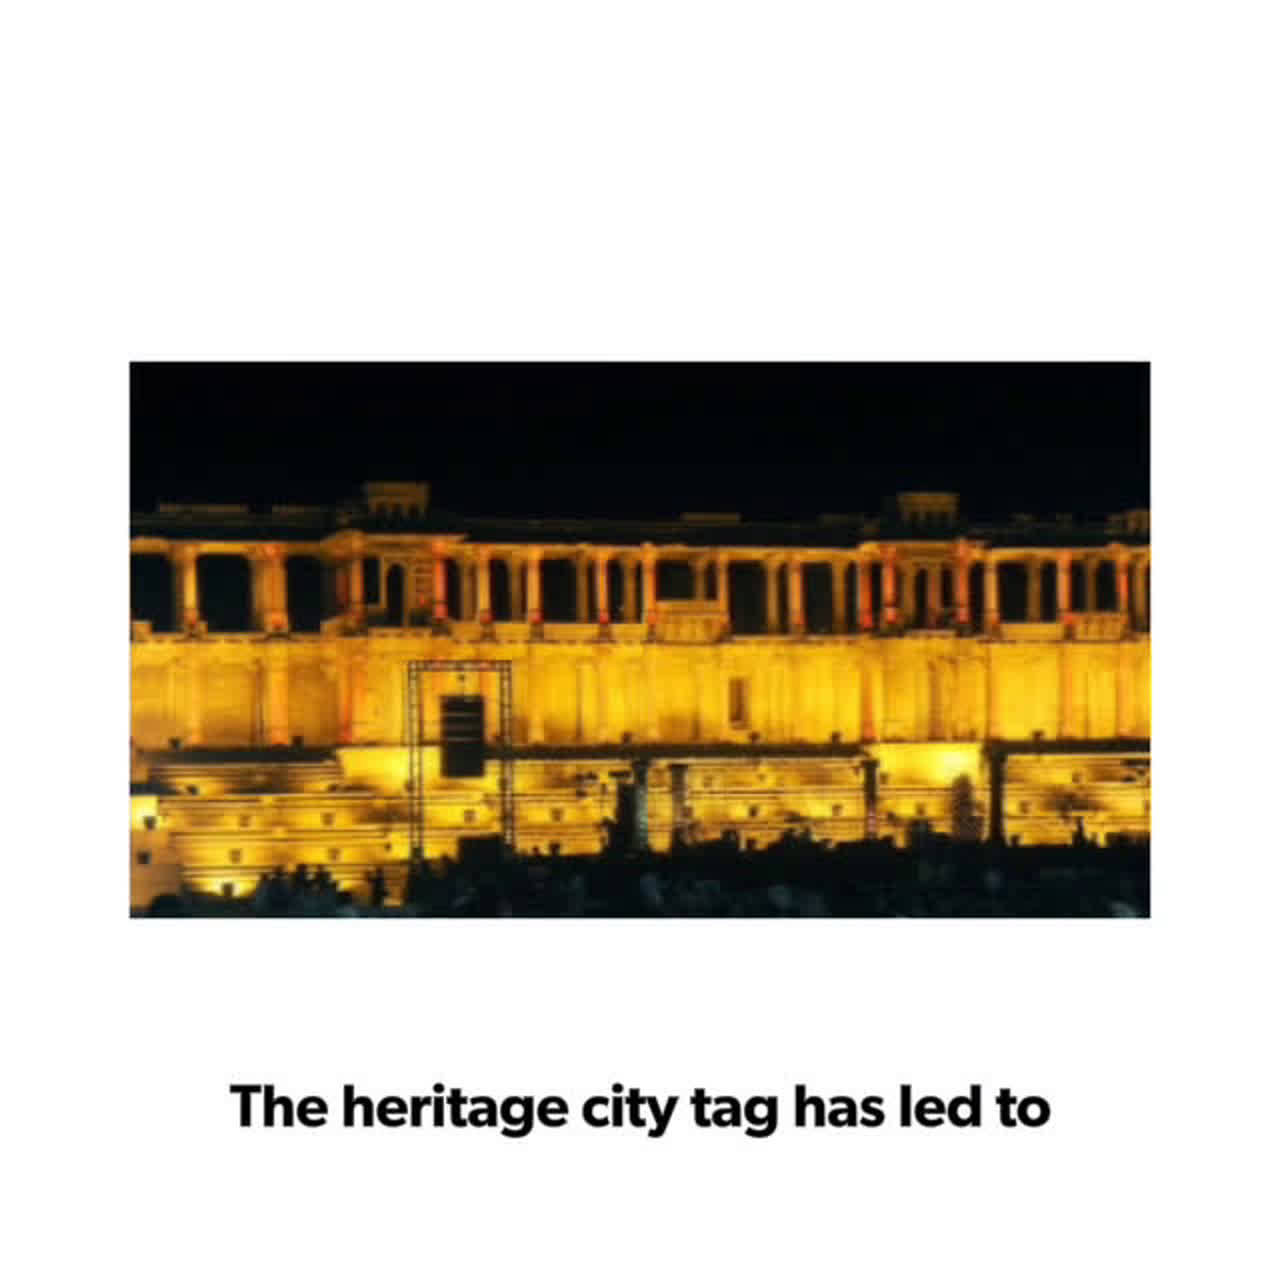 A year after Ahmedabad's World Heritage City Tag, city gets into action mode